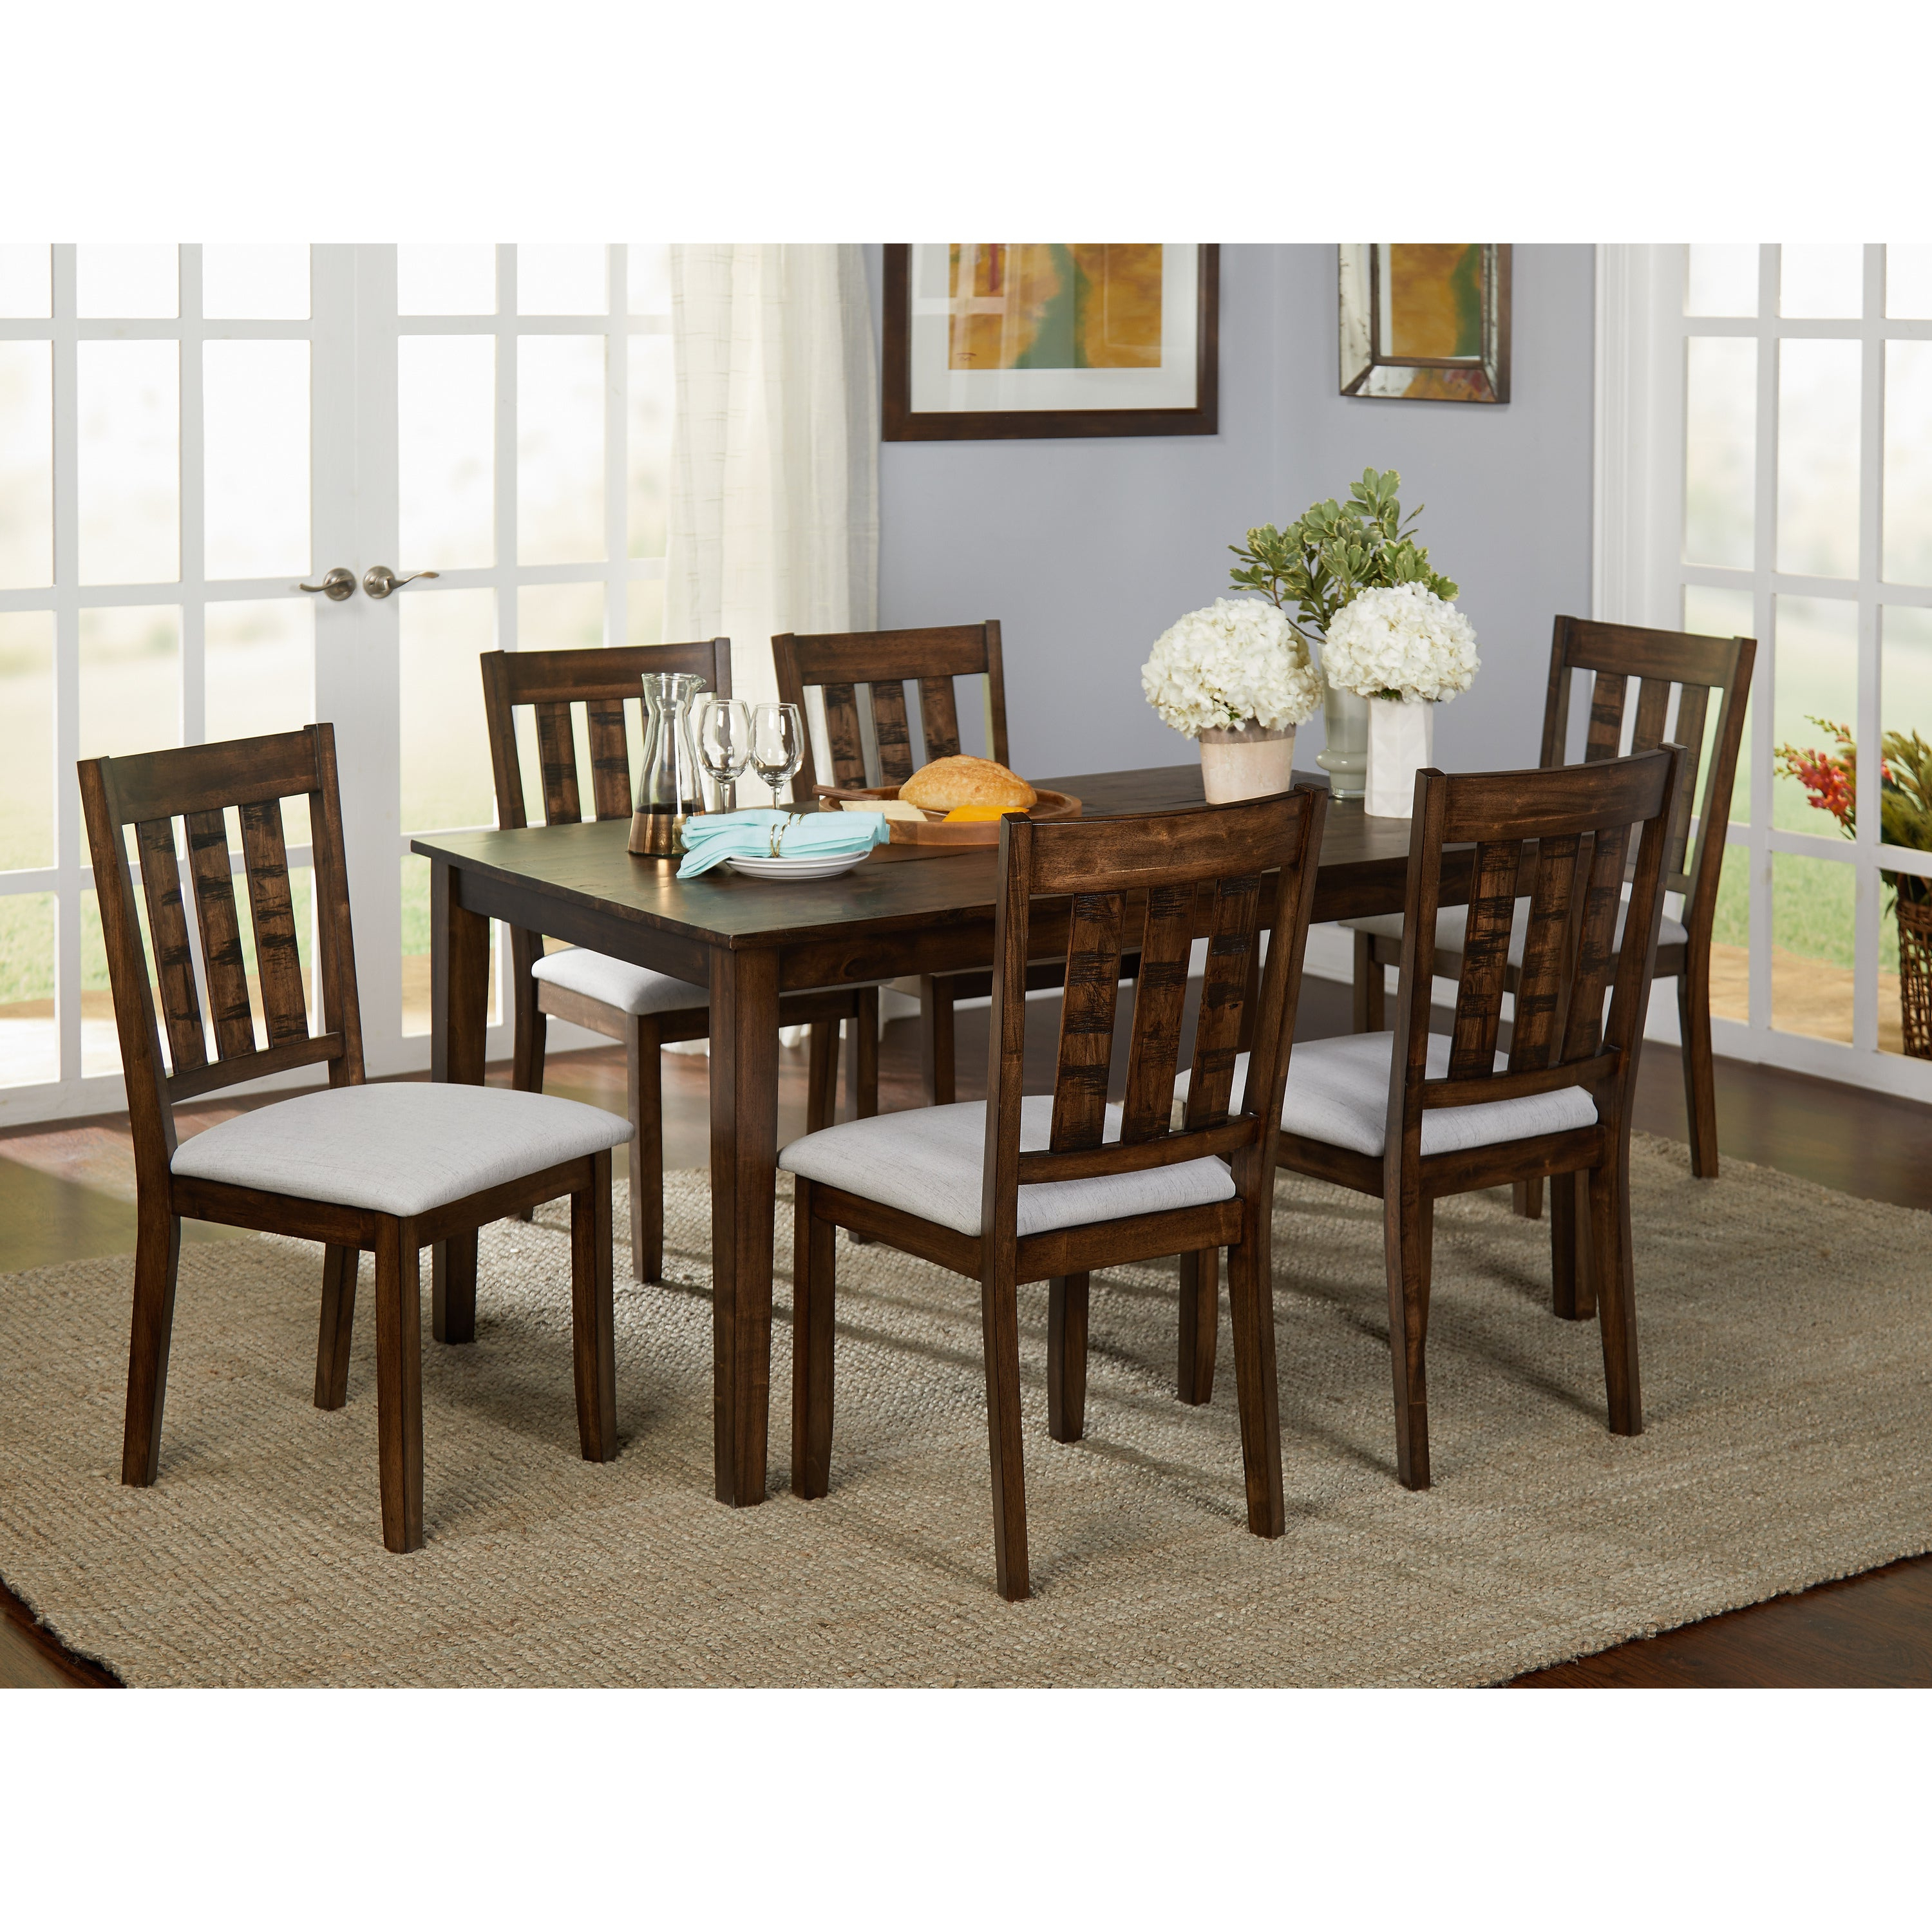 Buy Farmhouse Kitchen & Dining Room Tables Online At Overstock (View 10 of 25)